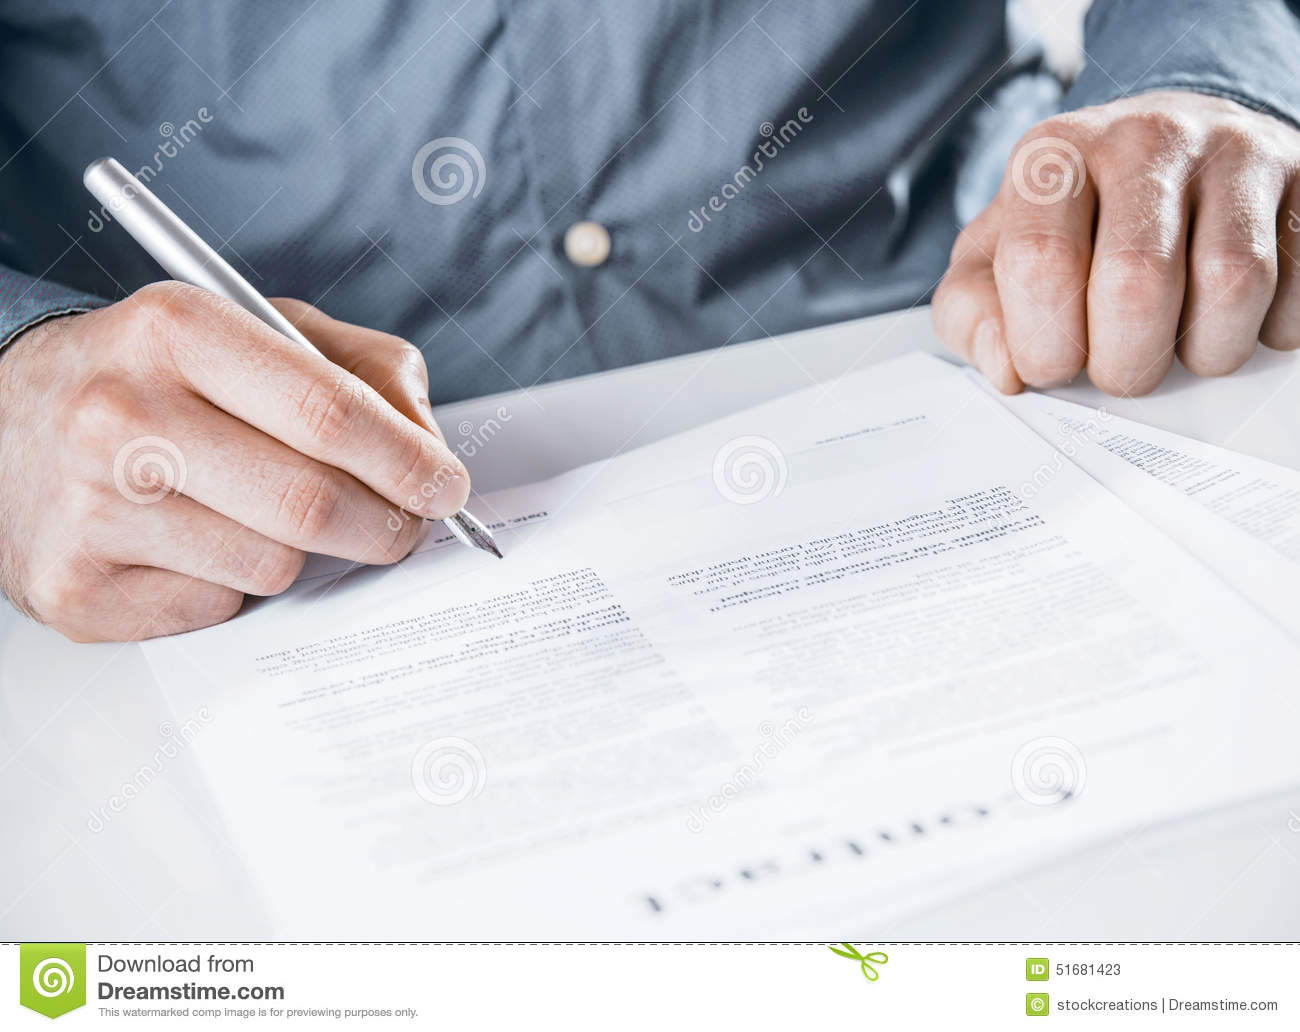 Businessman Signing A Legal Document Stock Image Image Of - Signing legal documents